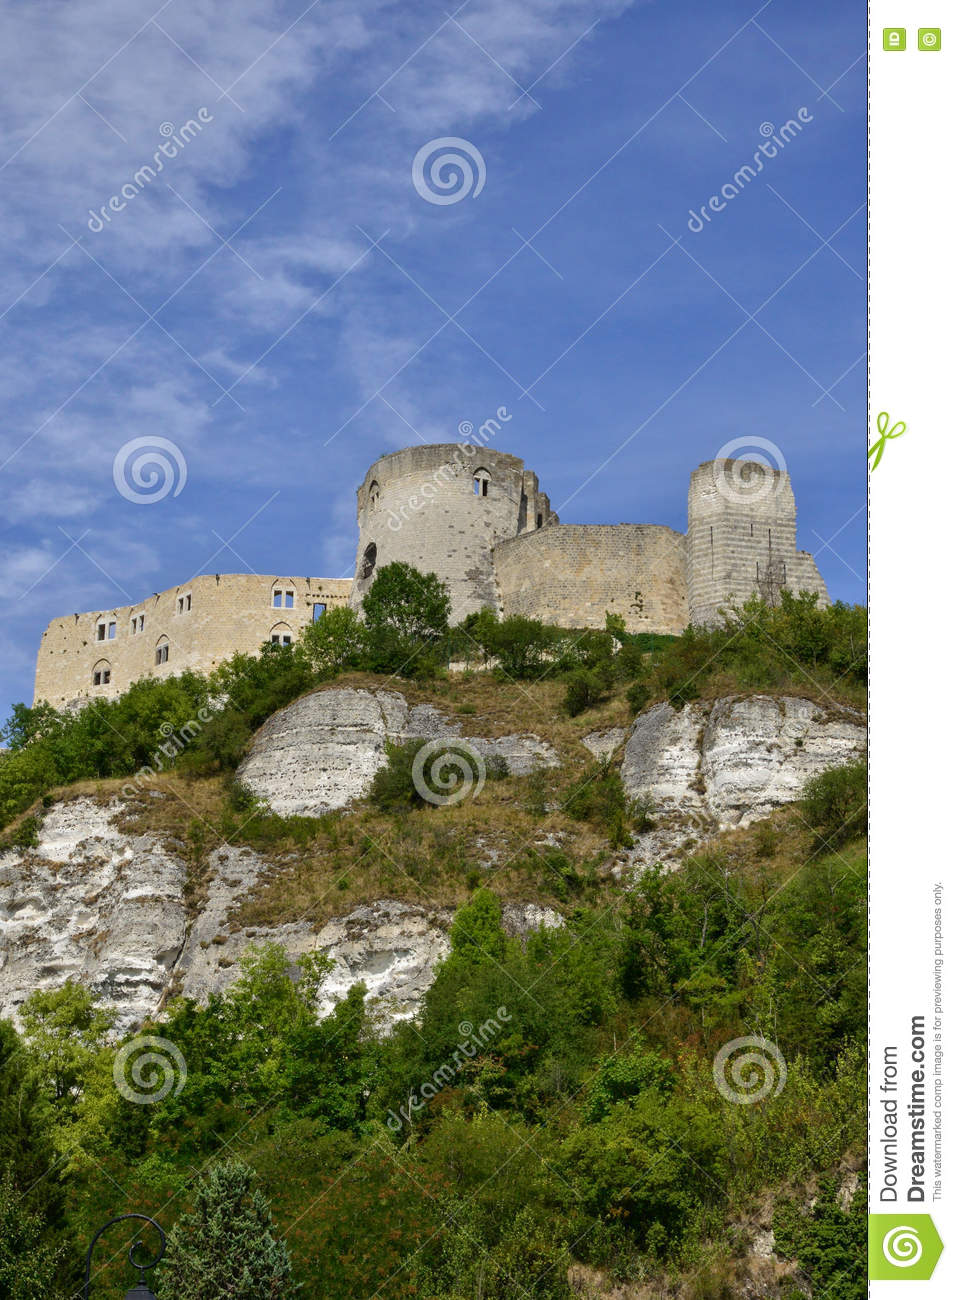 The City Of Les Andelys In Normandie Stock Photo Image Of Fort Gaillard 69493486